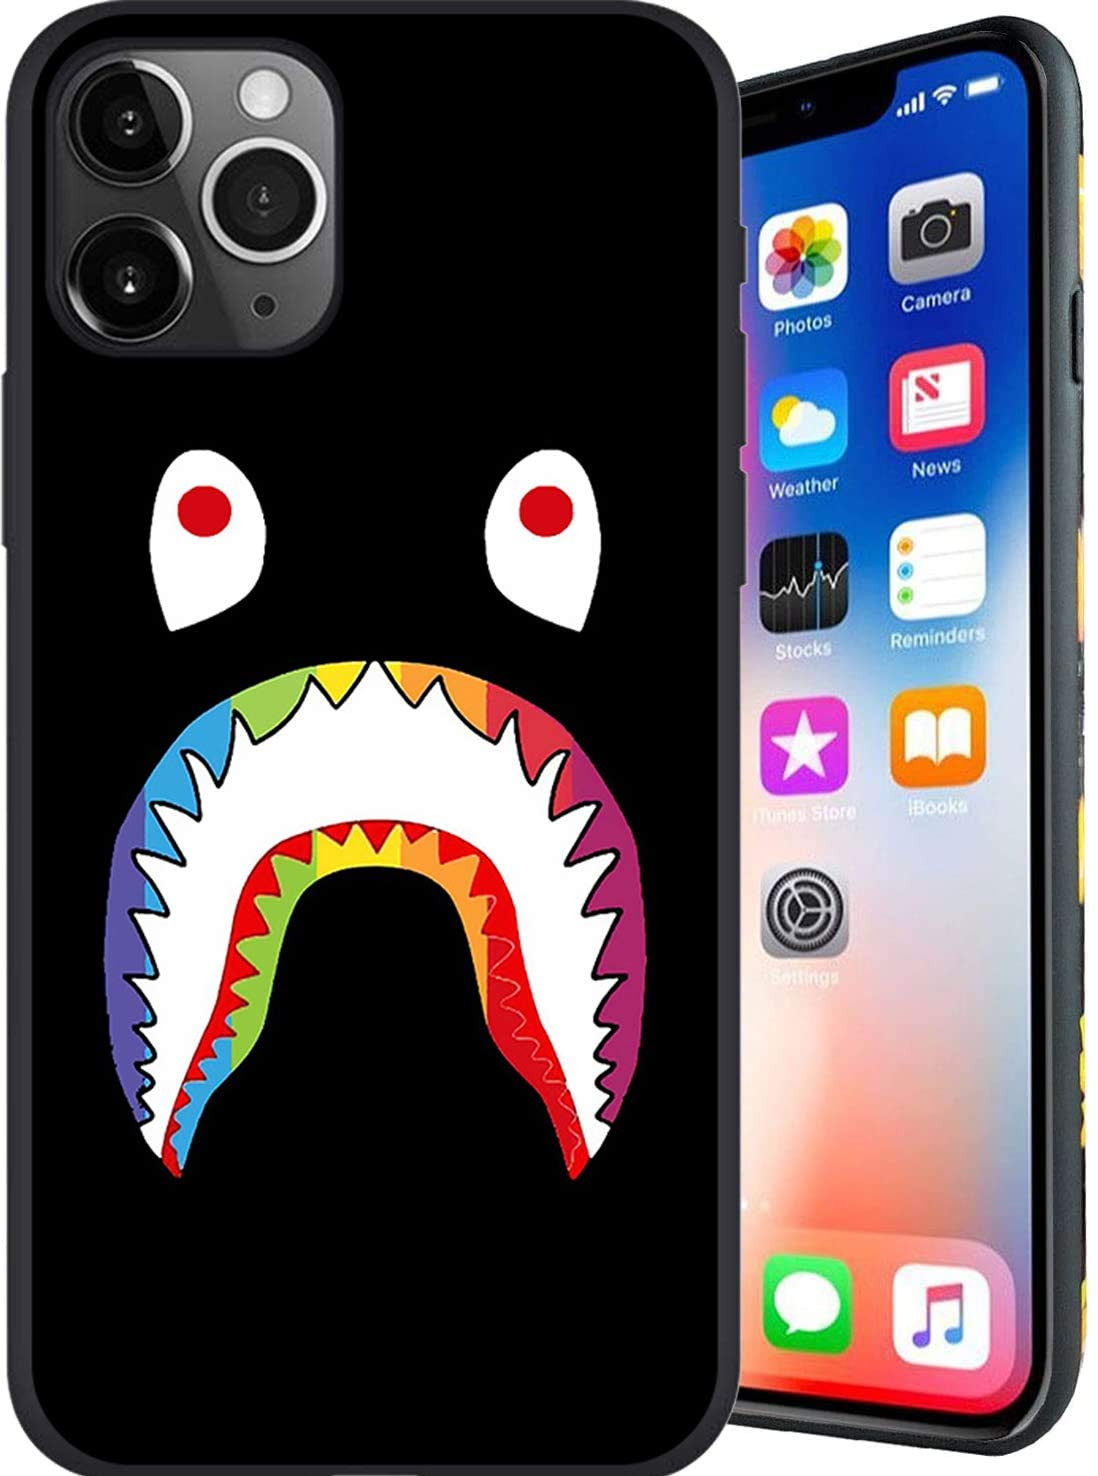 Shark Designed for iPhone 11 Pro Max Case, Fashion Slim Protective Cases Cover, Anti Scratch Unfading Coloring Premium Slim Fit Soft Cover, Compatible with 6.5 inch Case (Bape-Shark Black)